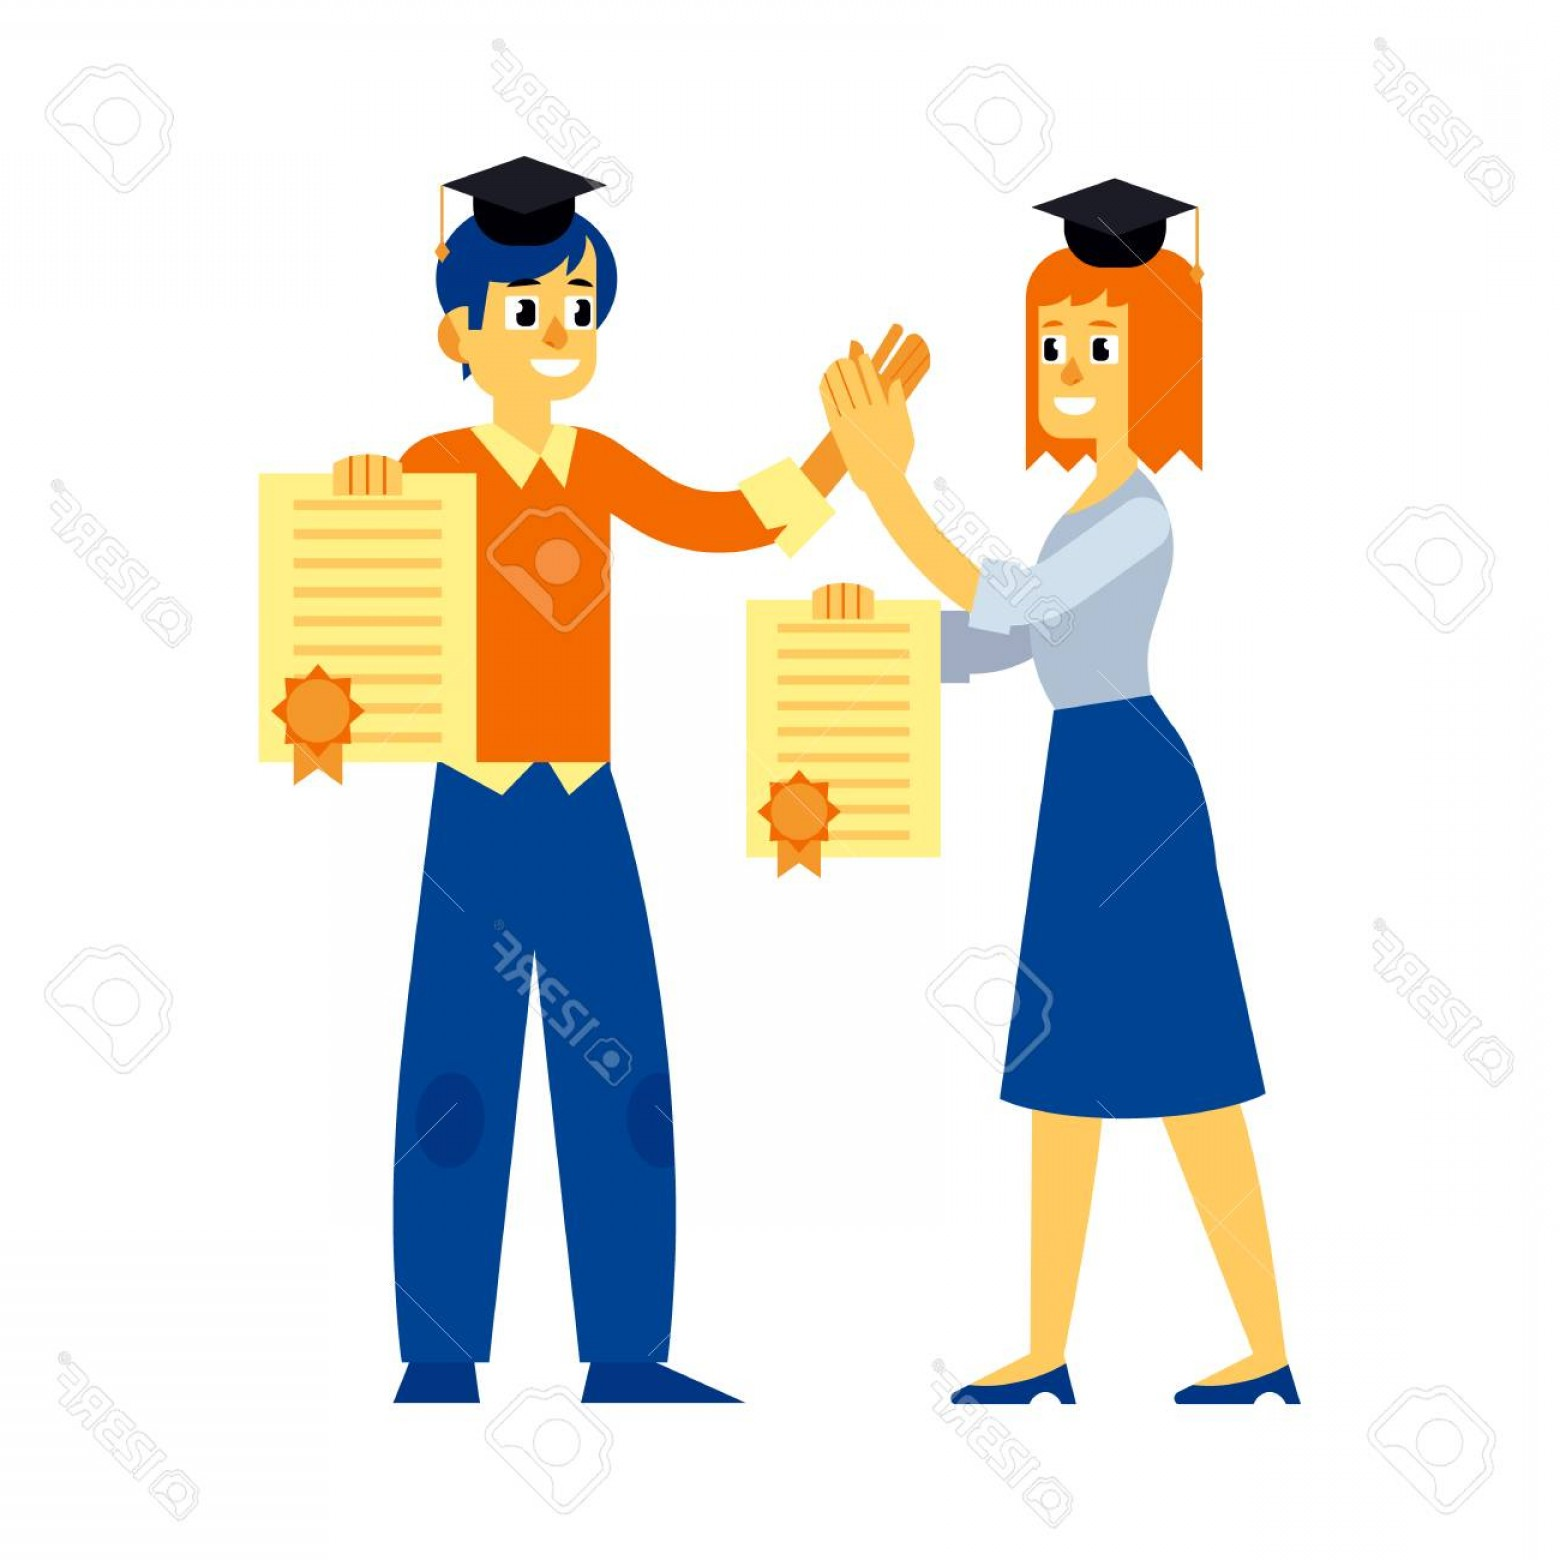 Standing Diploma Vector: Photostock Vector Cheerful Students Graduate Woman And Man Standing Holding Diploma Graduation In Hands Giving High Fi